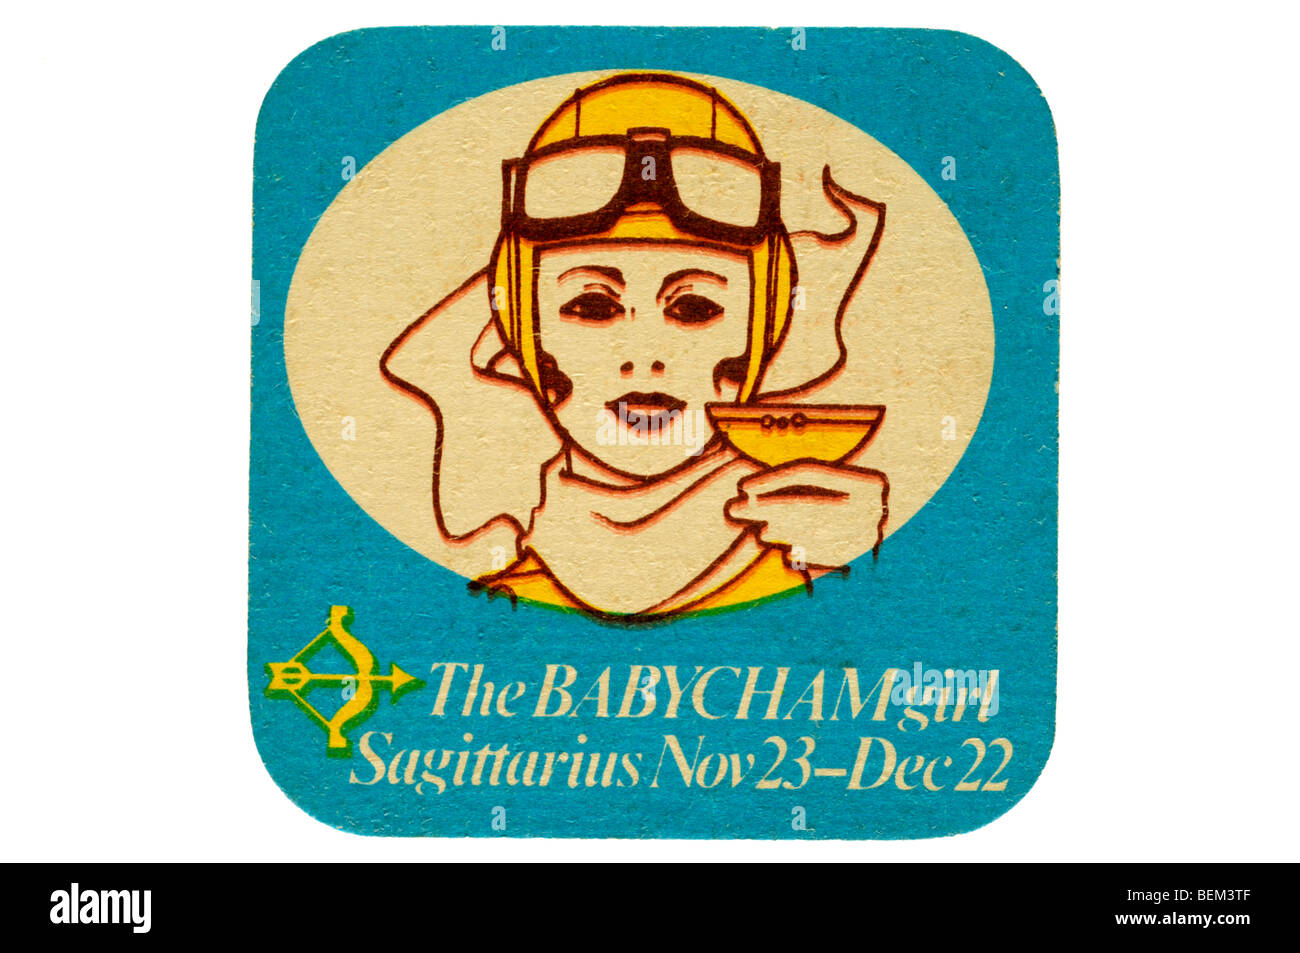 the babycham girl sagiterius nov 23 dec 22 - Stock Image